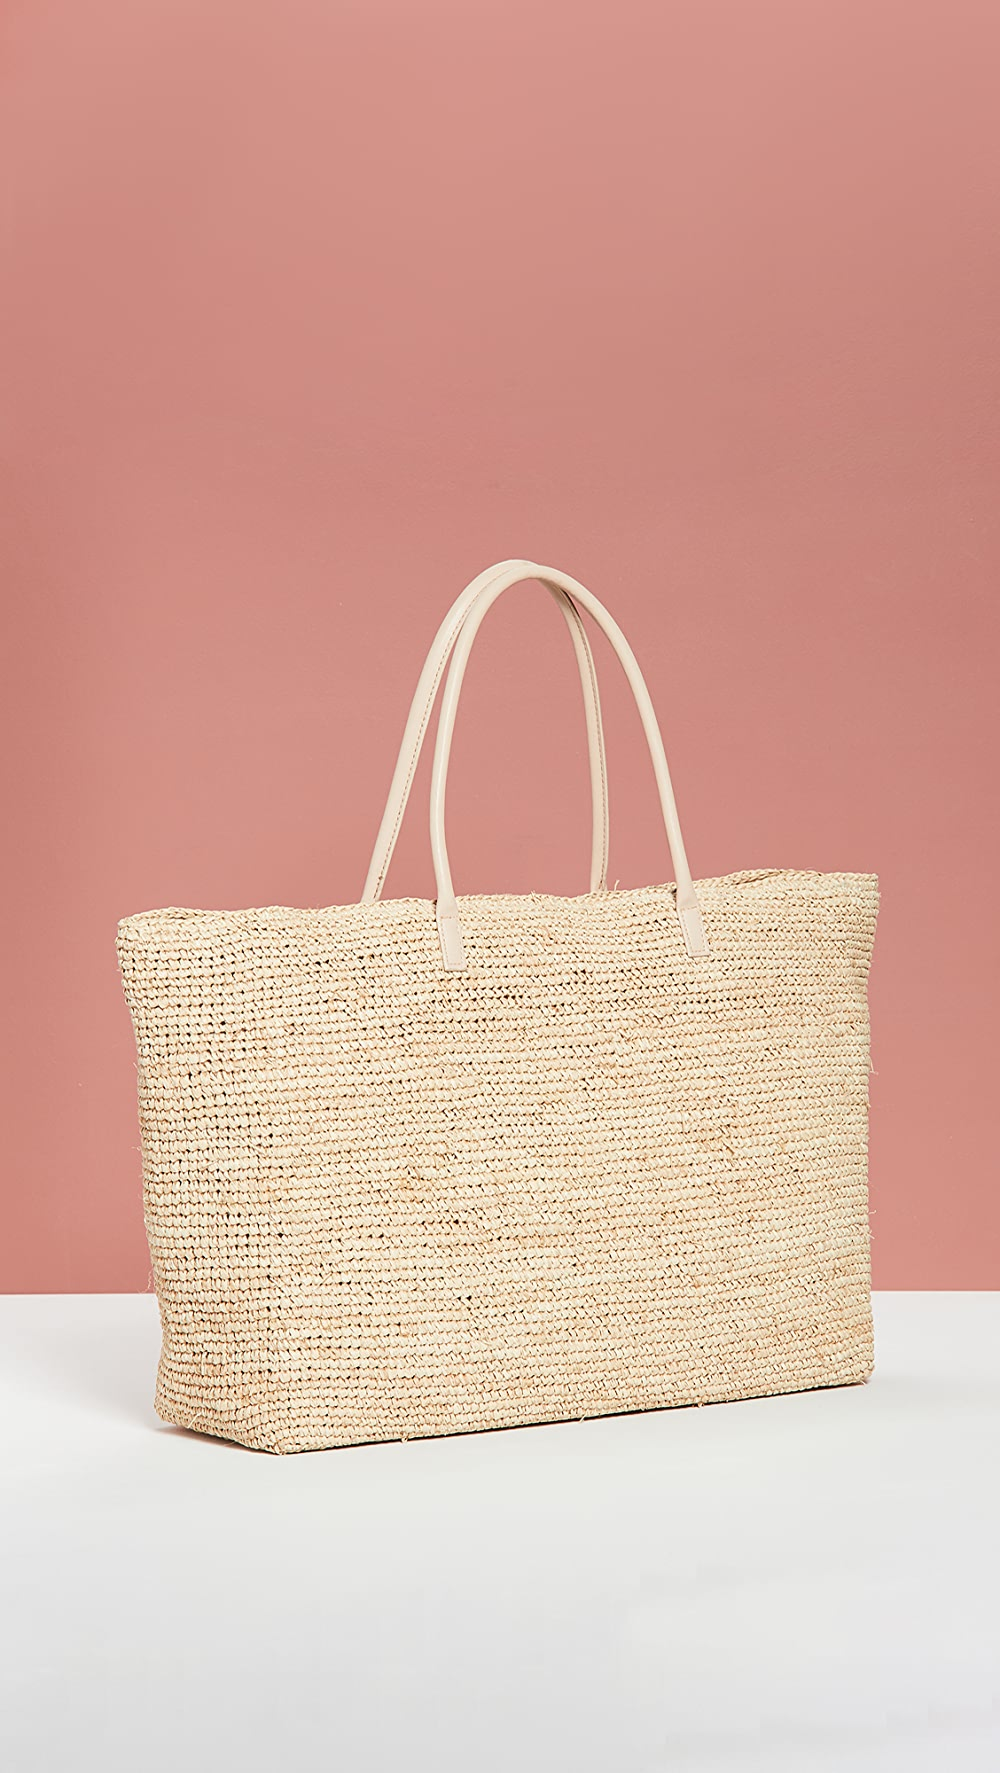 Considerate Hat Attack - Chic Tote Factory Direct Selling Price